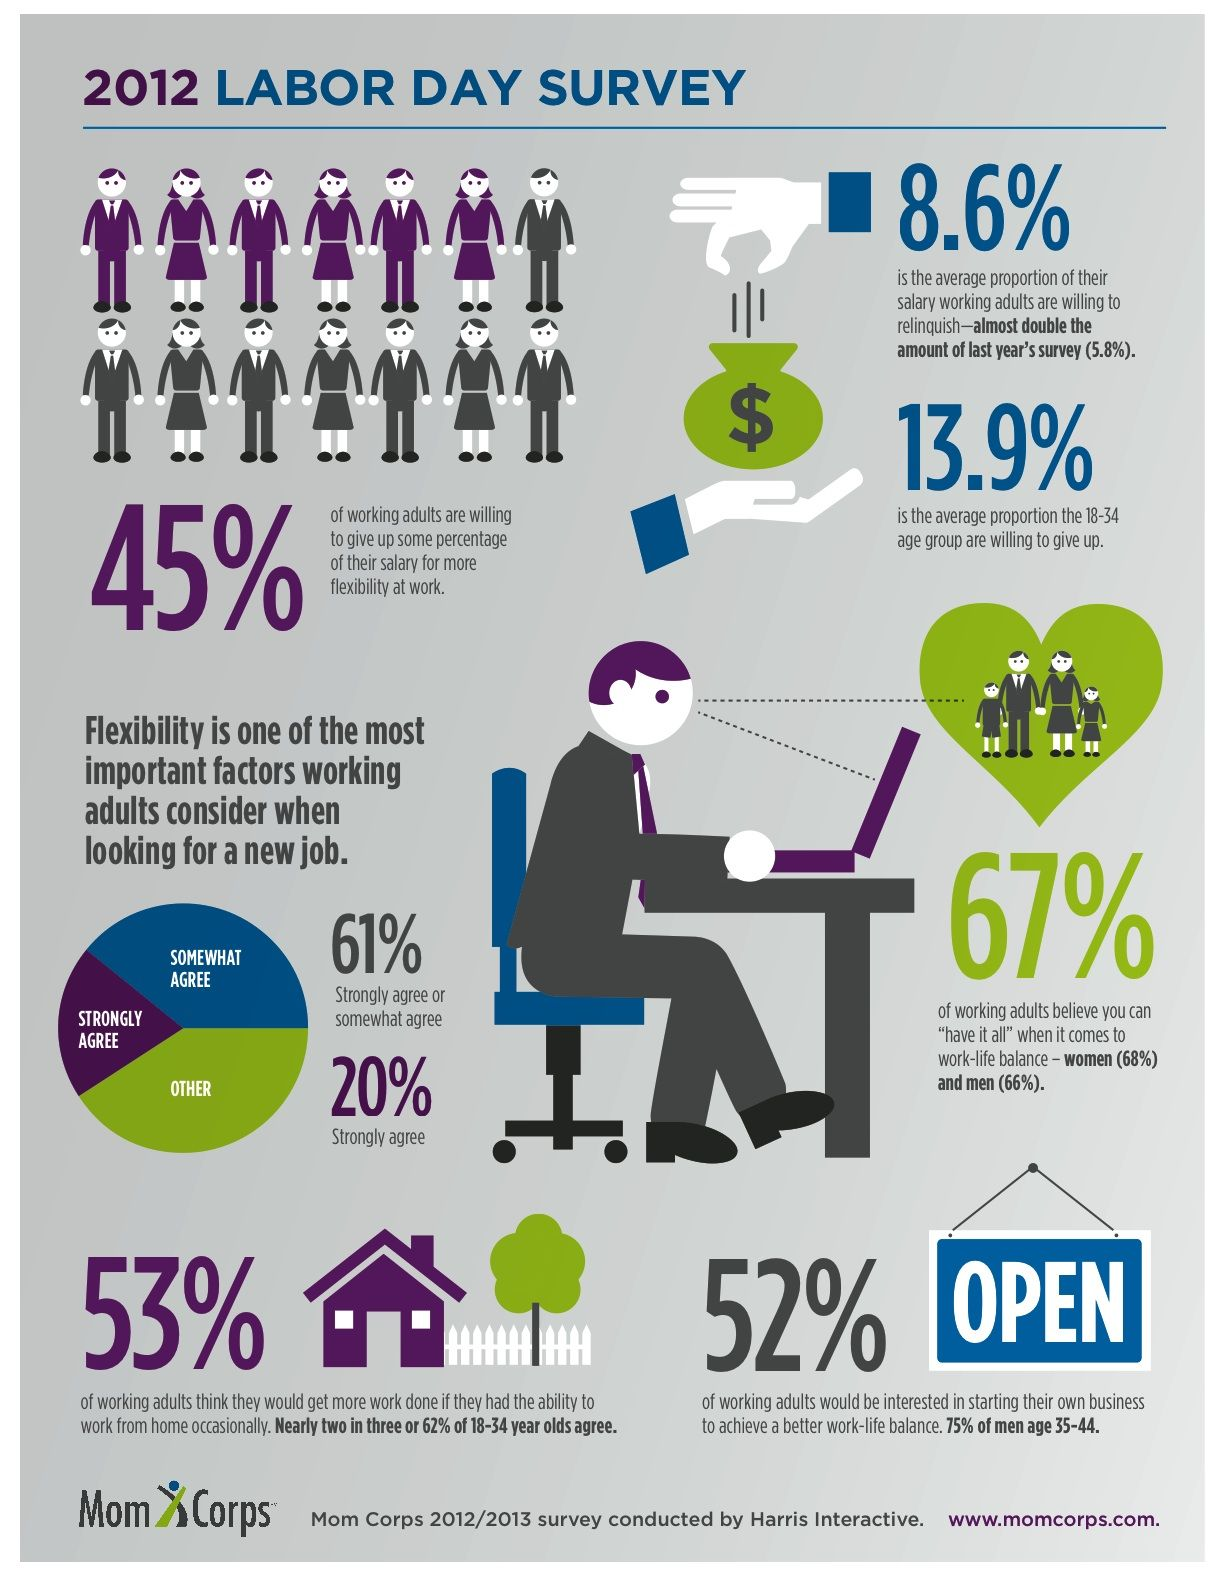 mom corps infographic, labor day survey, workforce